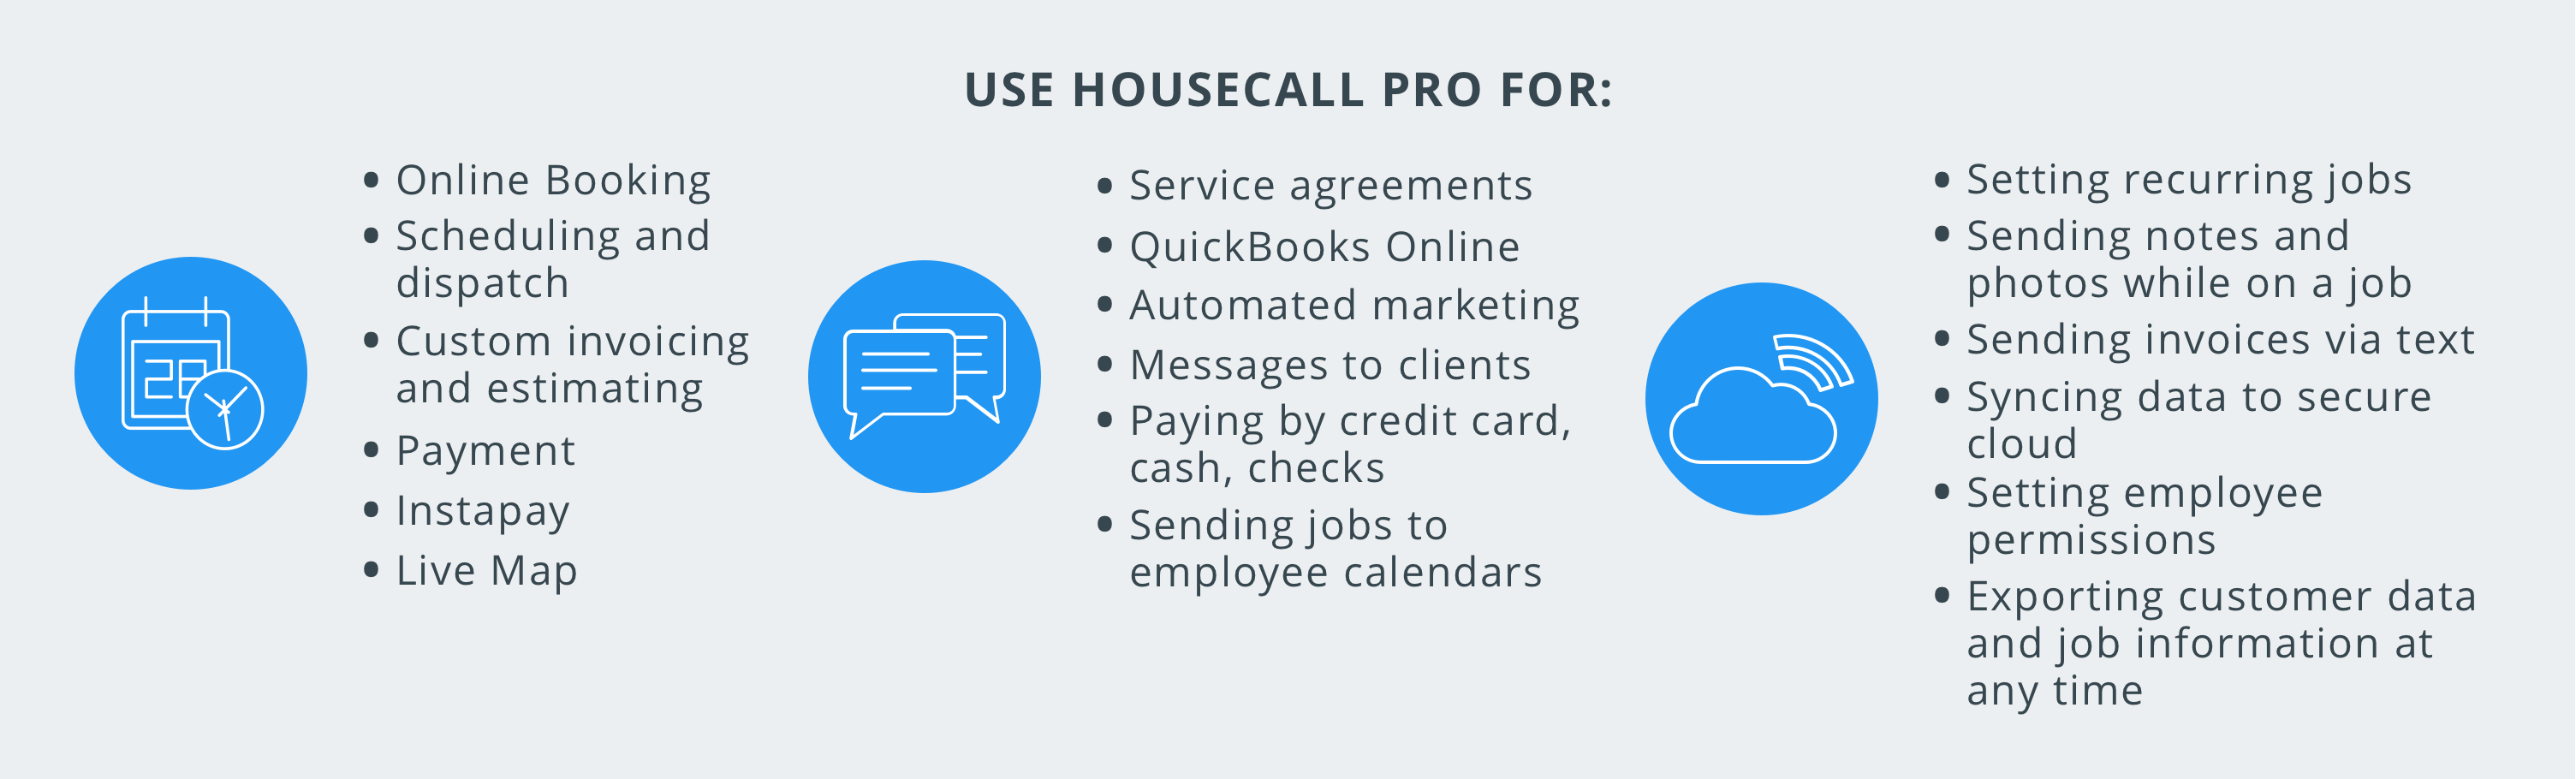 Best HVAC App_Ways to use Housecall Pro's HVAC App